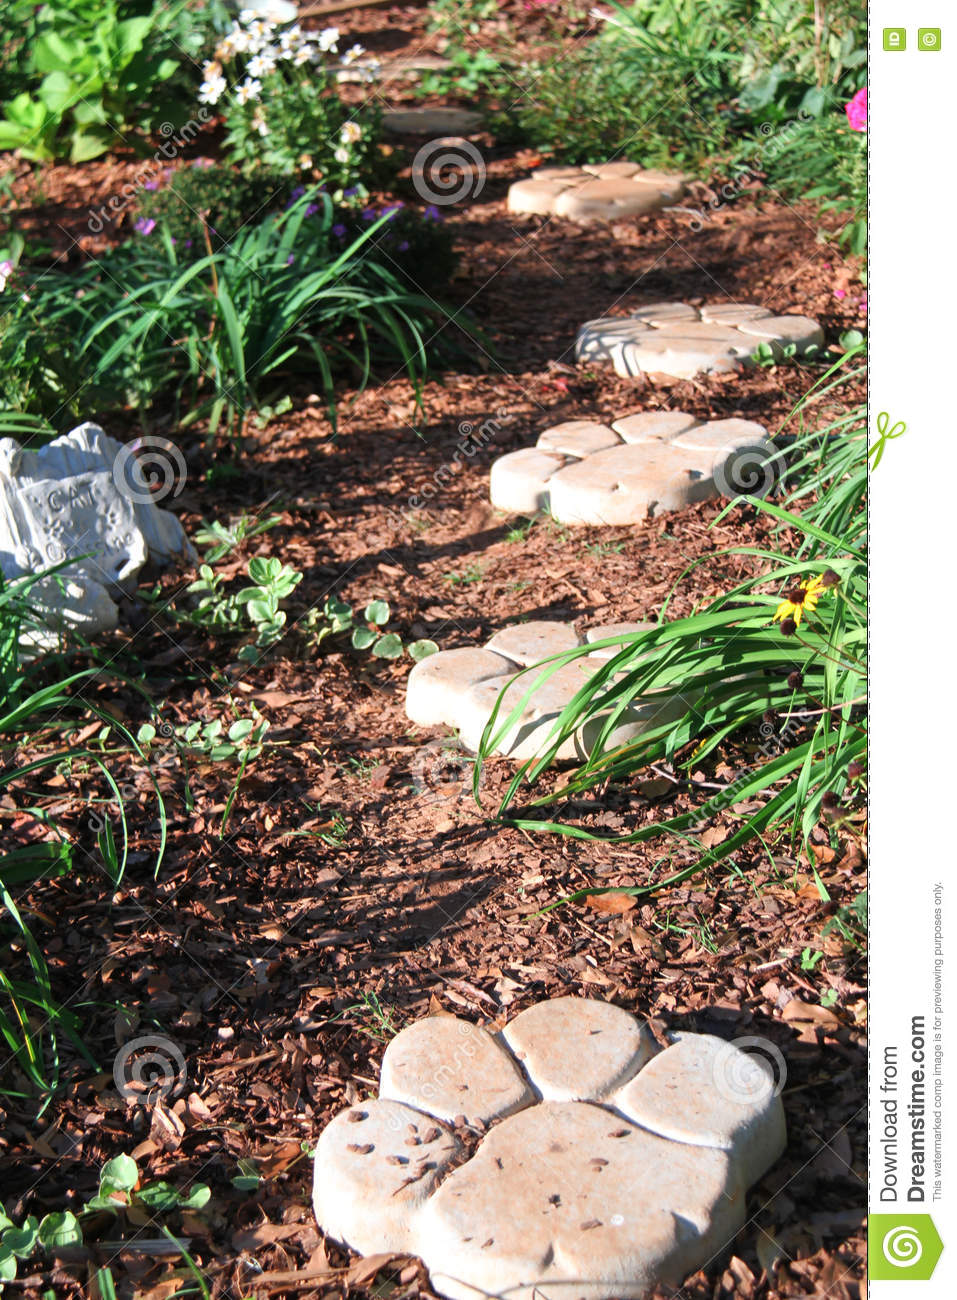 Concrete Paw Print Path In The Garden Stock Image - Image of bloom ...